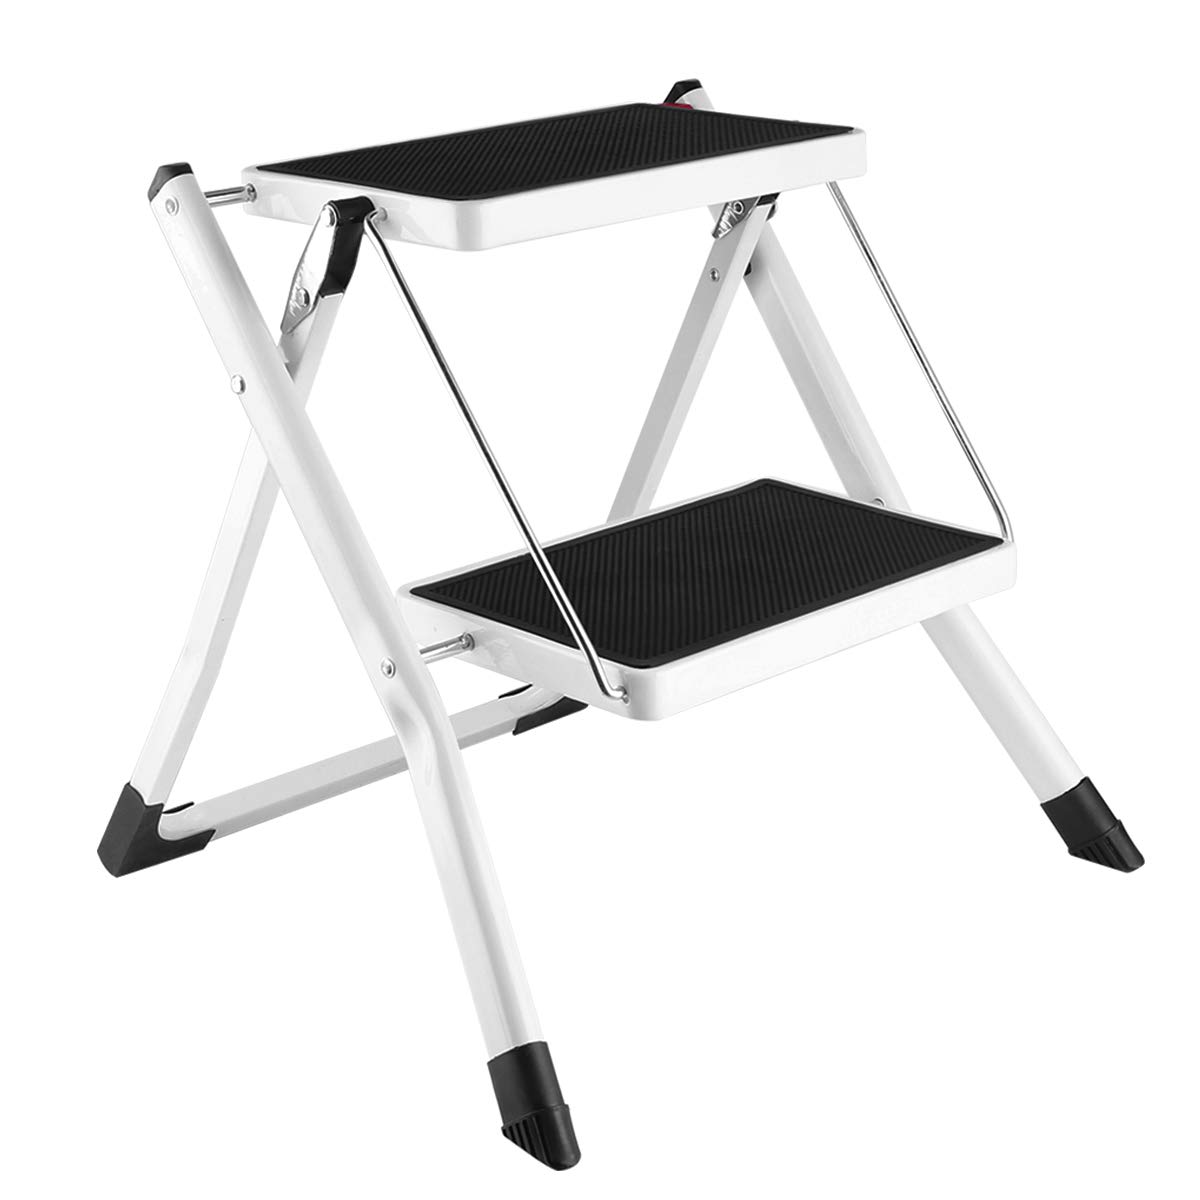 Gimify 2 Step Stool Folding Step Ladder Mini Steel Stepladders Anti Slip Sturdy Steps Wide Pedal With Portable Handle Lightweight For Home Kitchen Office 250 Lbs